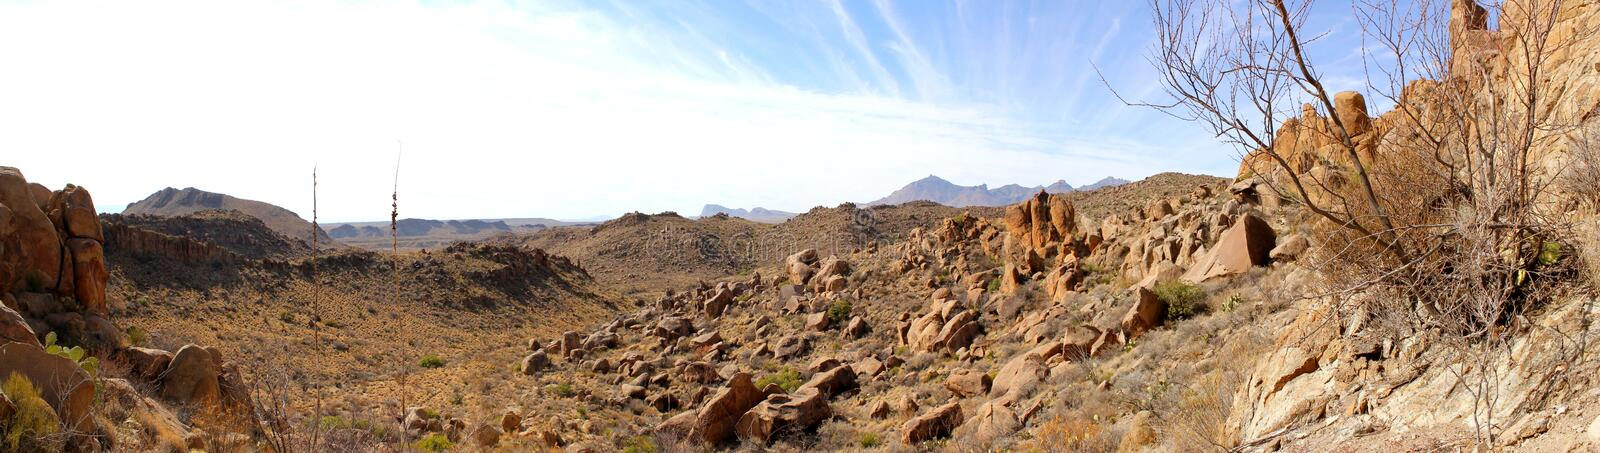 Panoramic view of the Chihuahuan Desert in Big Bend National Park, USA stock image